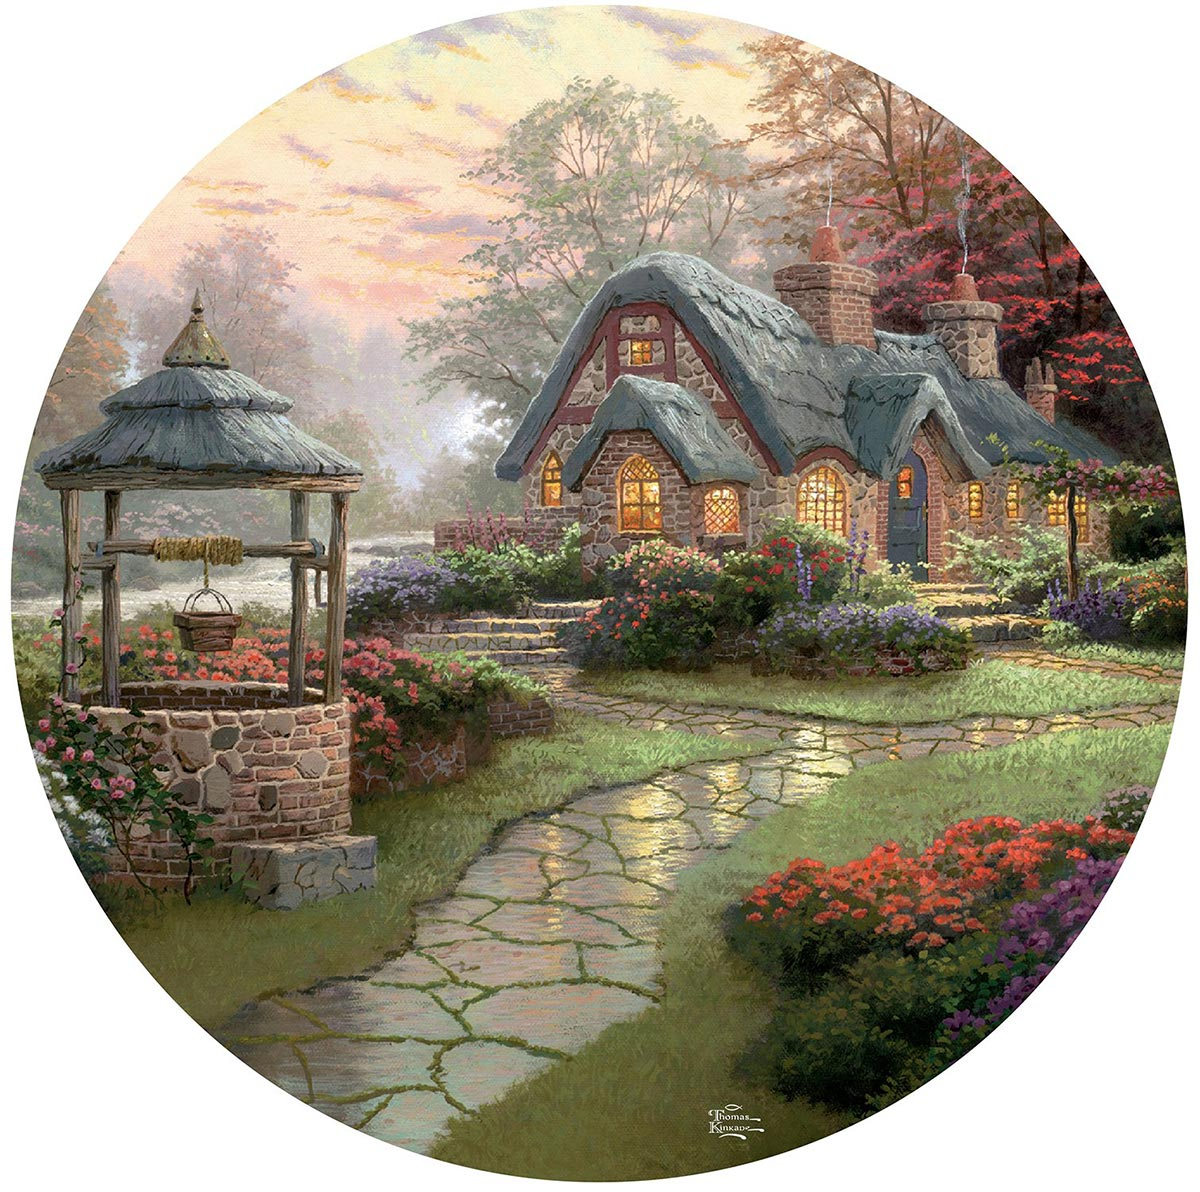 Make a Wish Cottage Garden Shaped Puzzle